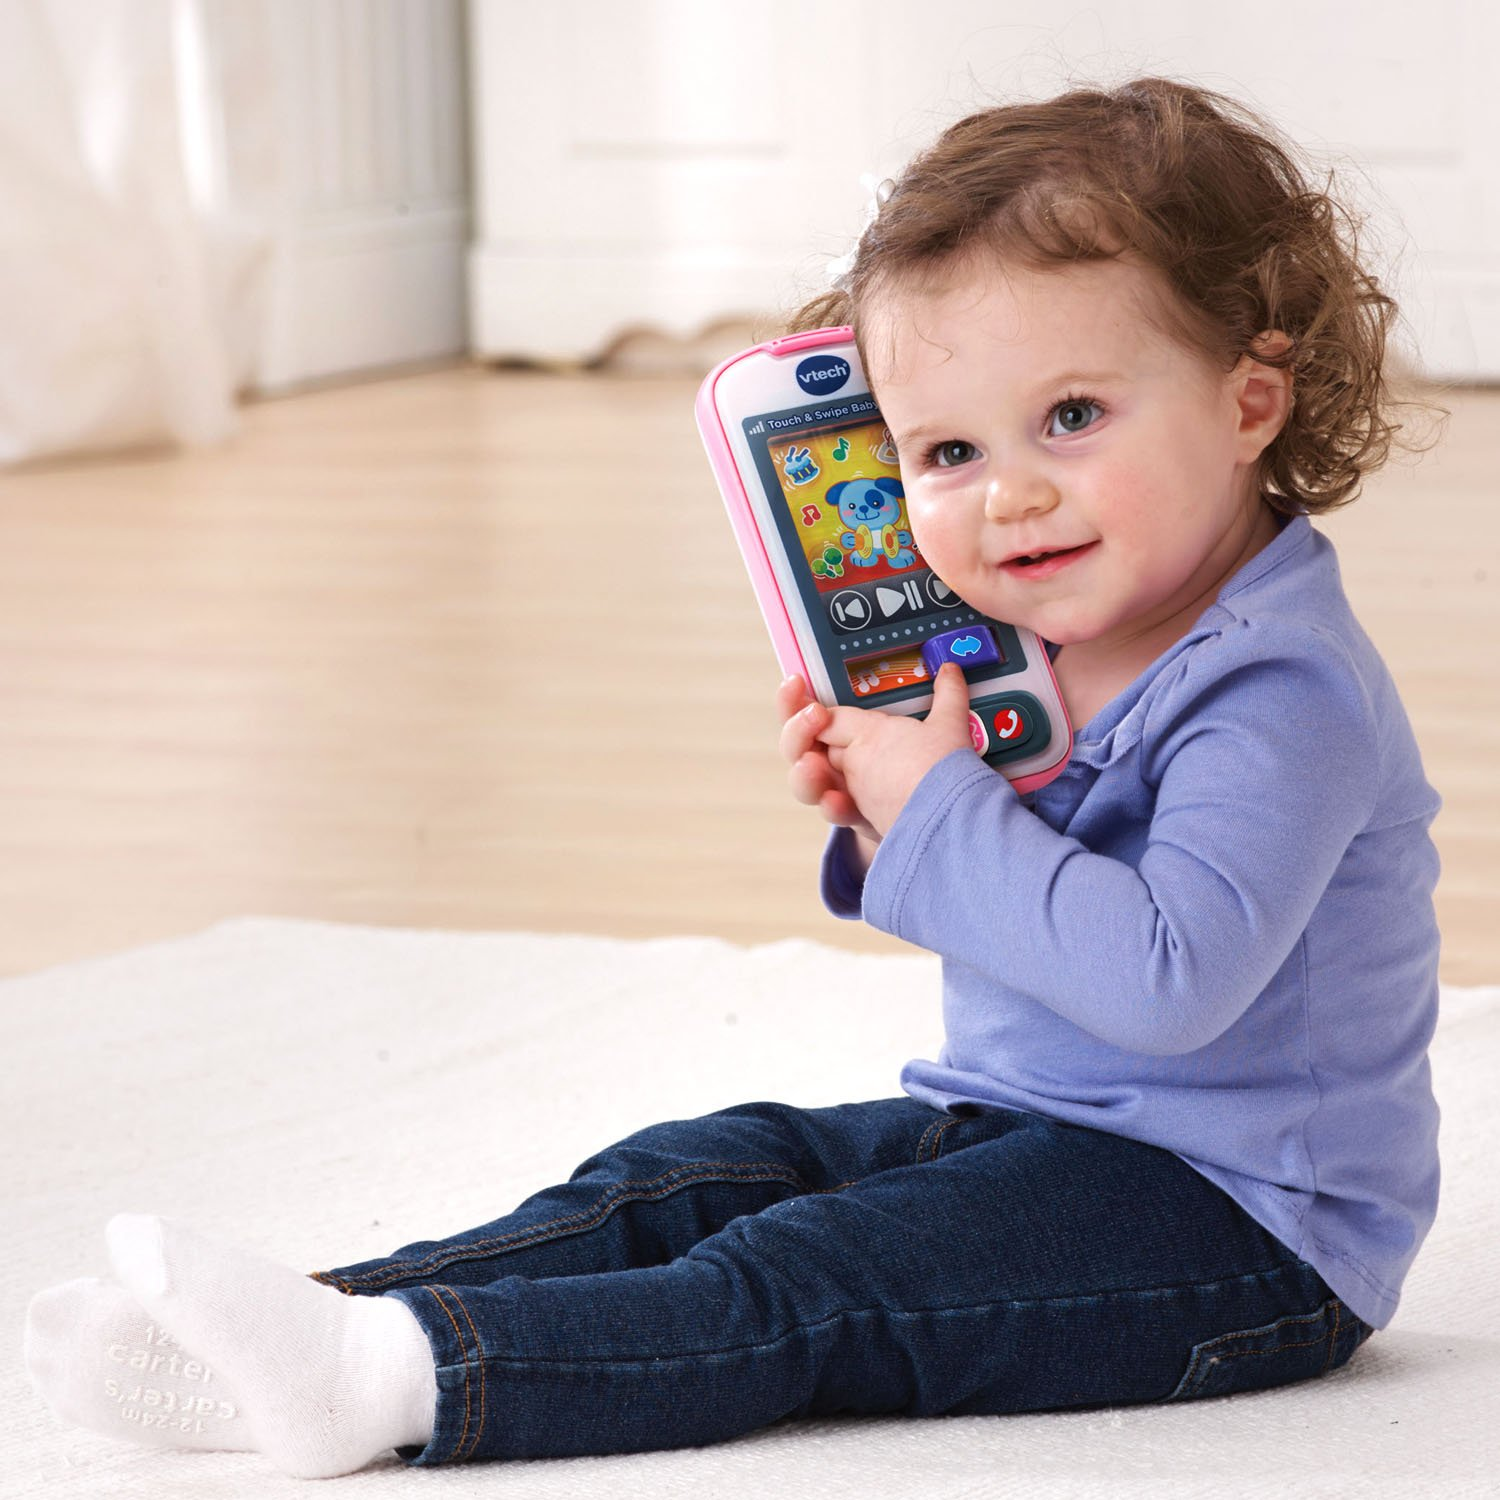 VTech Touch and Swipe Baby Phone, Pink by VTech (Image #4)